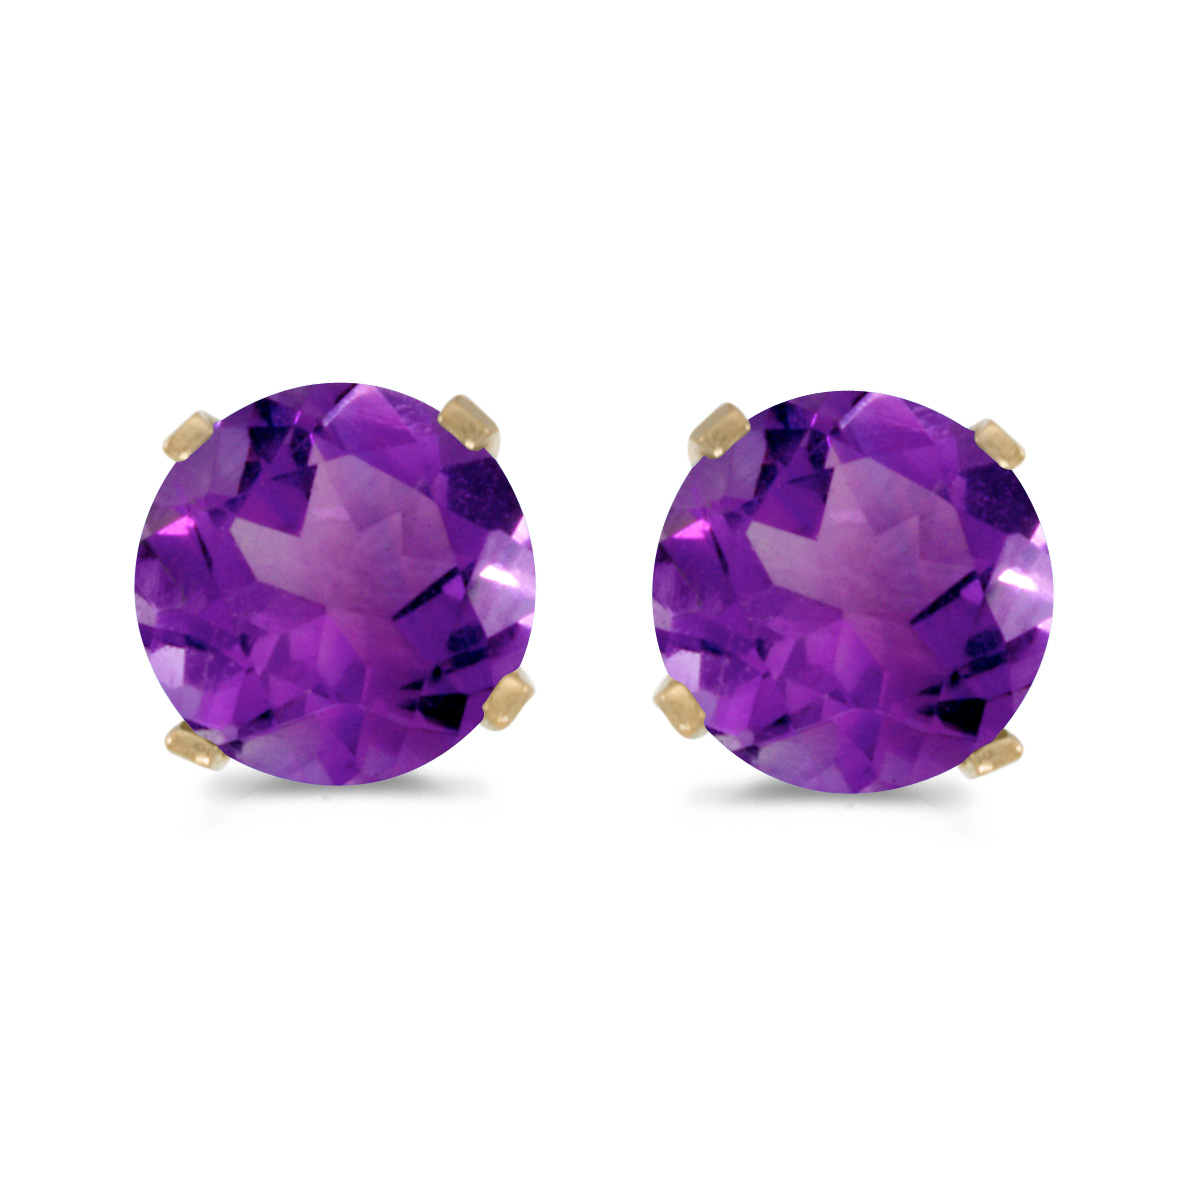 These 14k yellow gold round amethyst stud earrings feature 5 mm genuine natural amethysts with a 0.78 ct total weight.